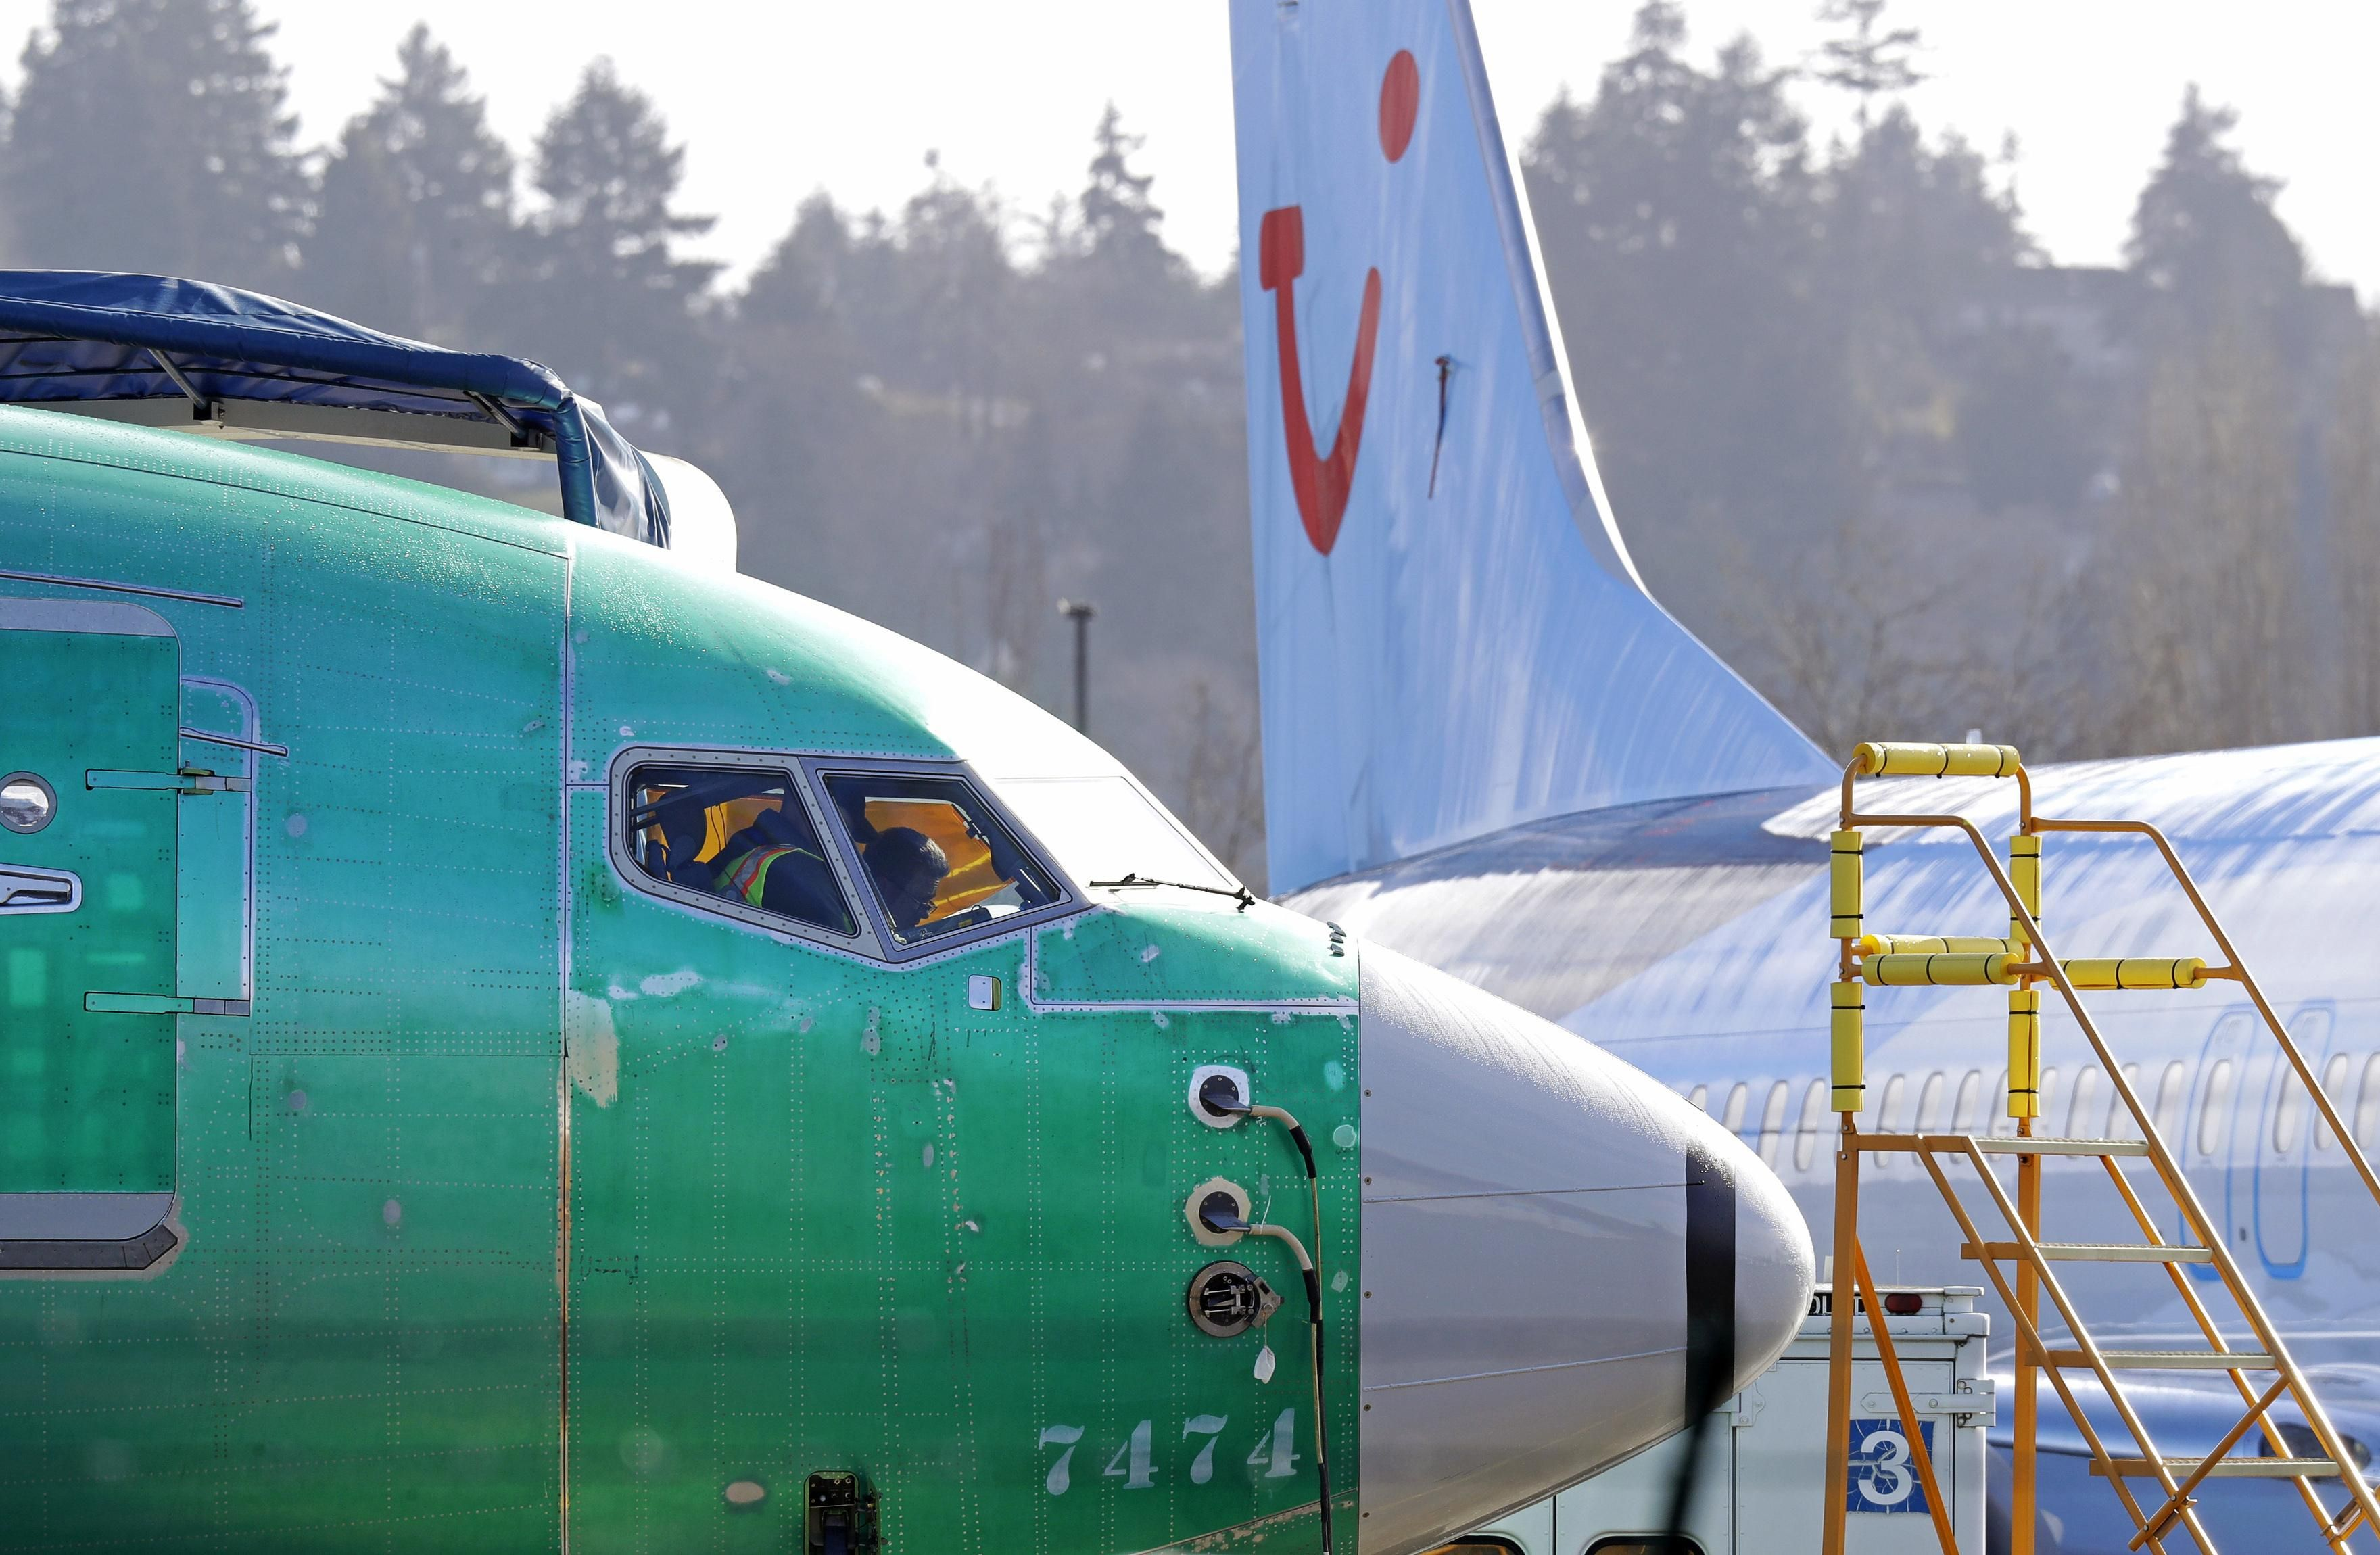 Anti-stall system was on before Ethiopian jet crash, says report